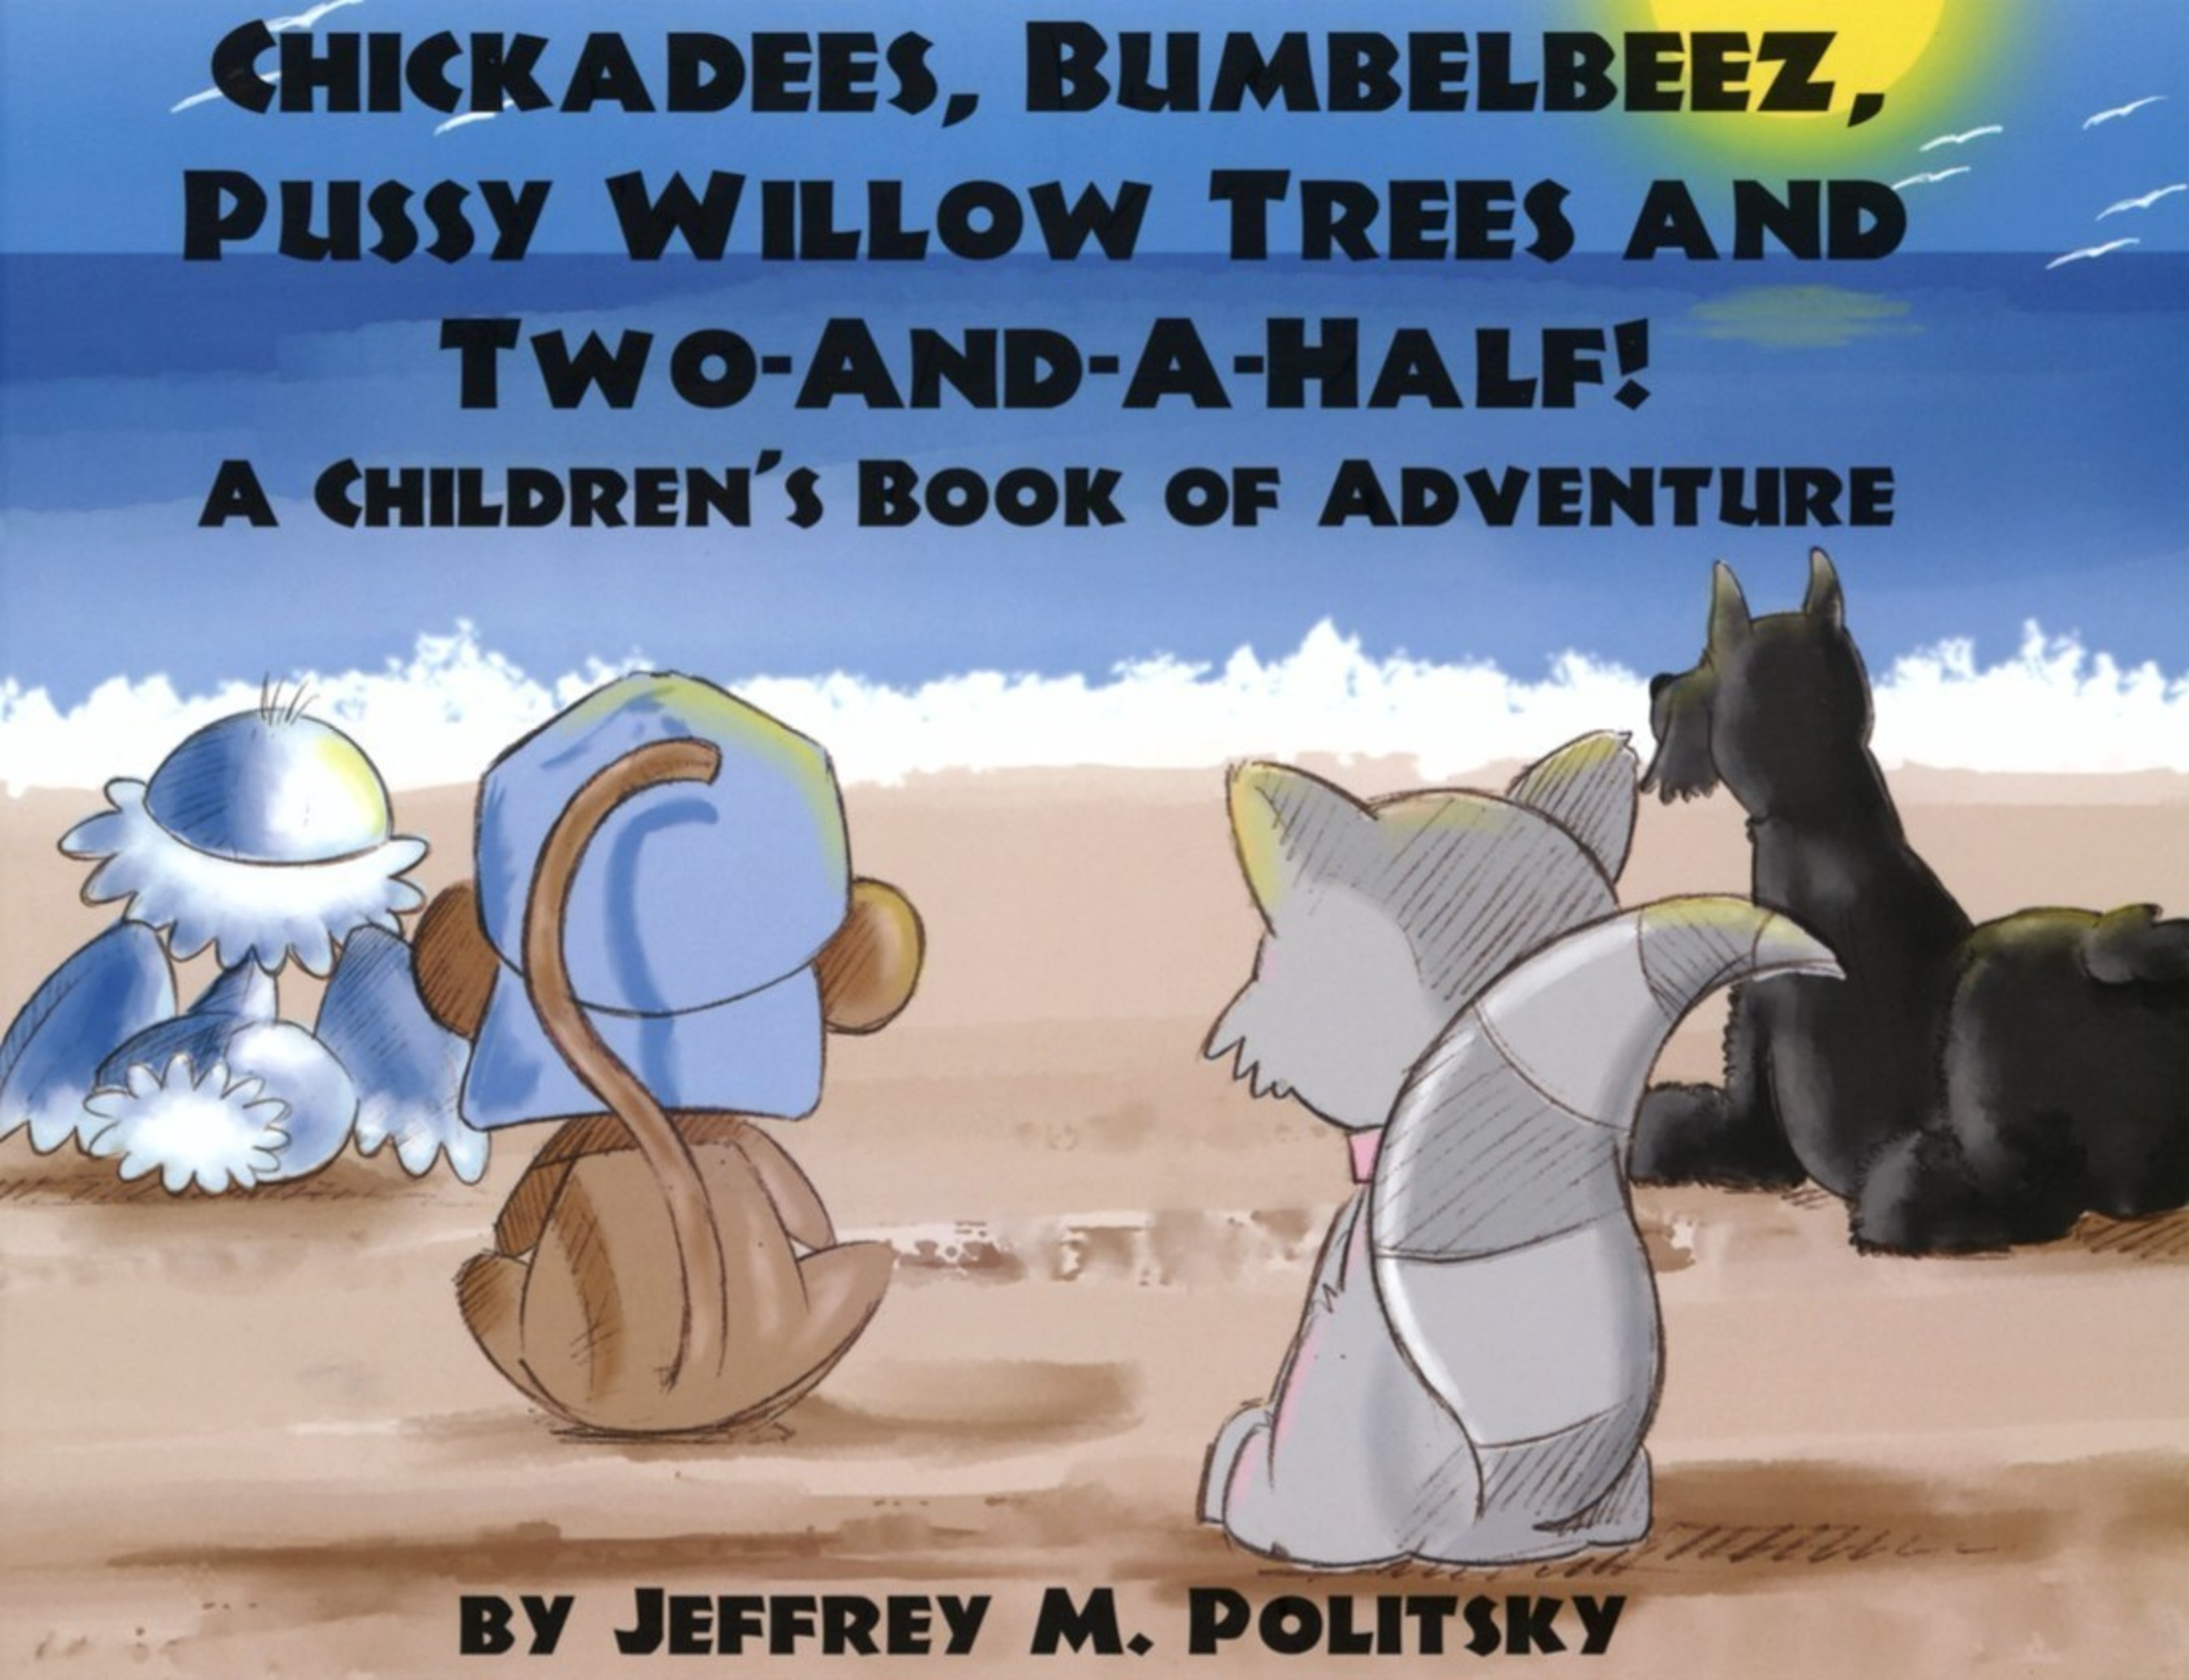 Dr. Jeffrey Politsky Announces The Release of His Children's Book 'Chickadees, Bumblebeez, Pussy-Willow Trees and Two-And-A-Half'